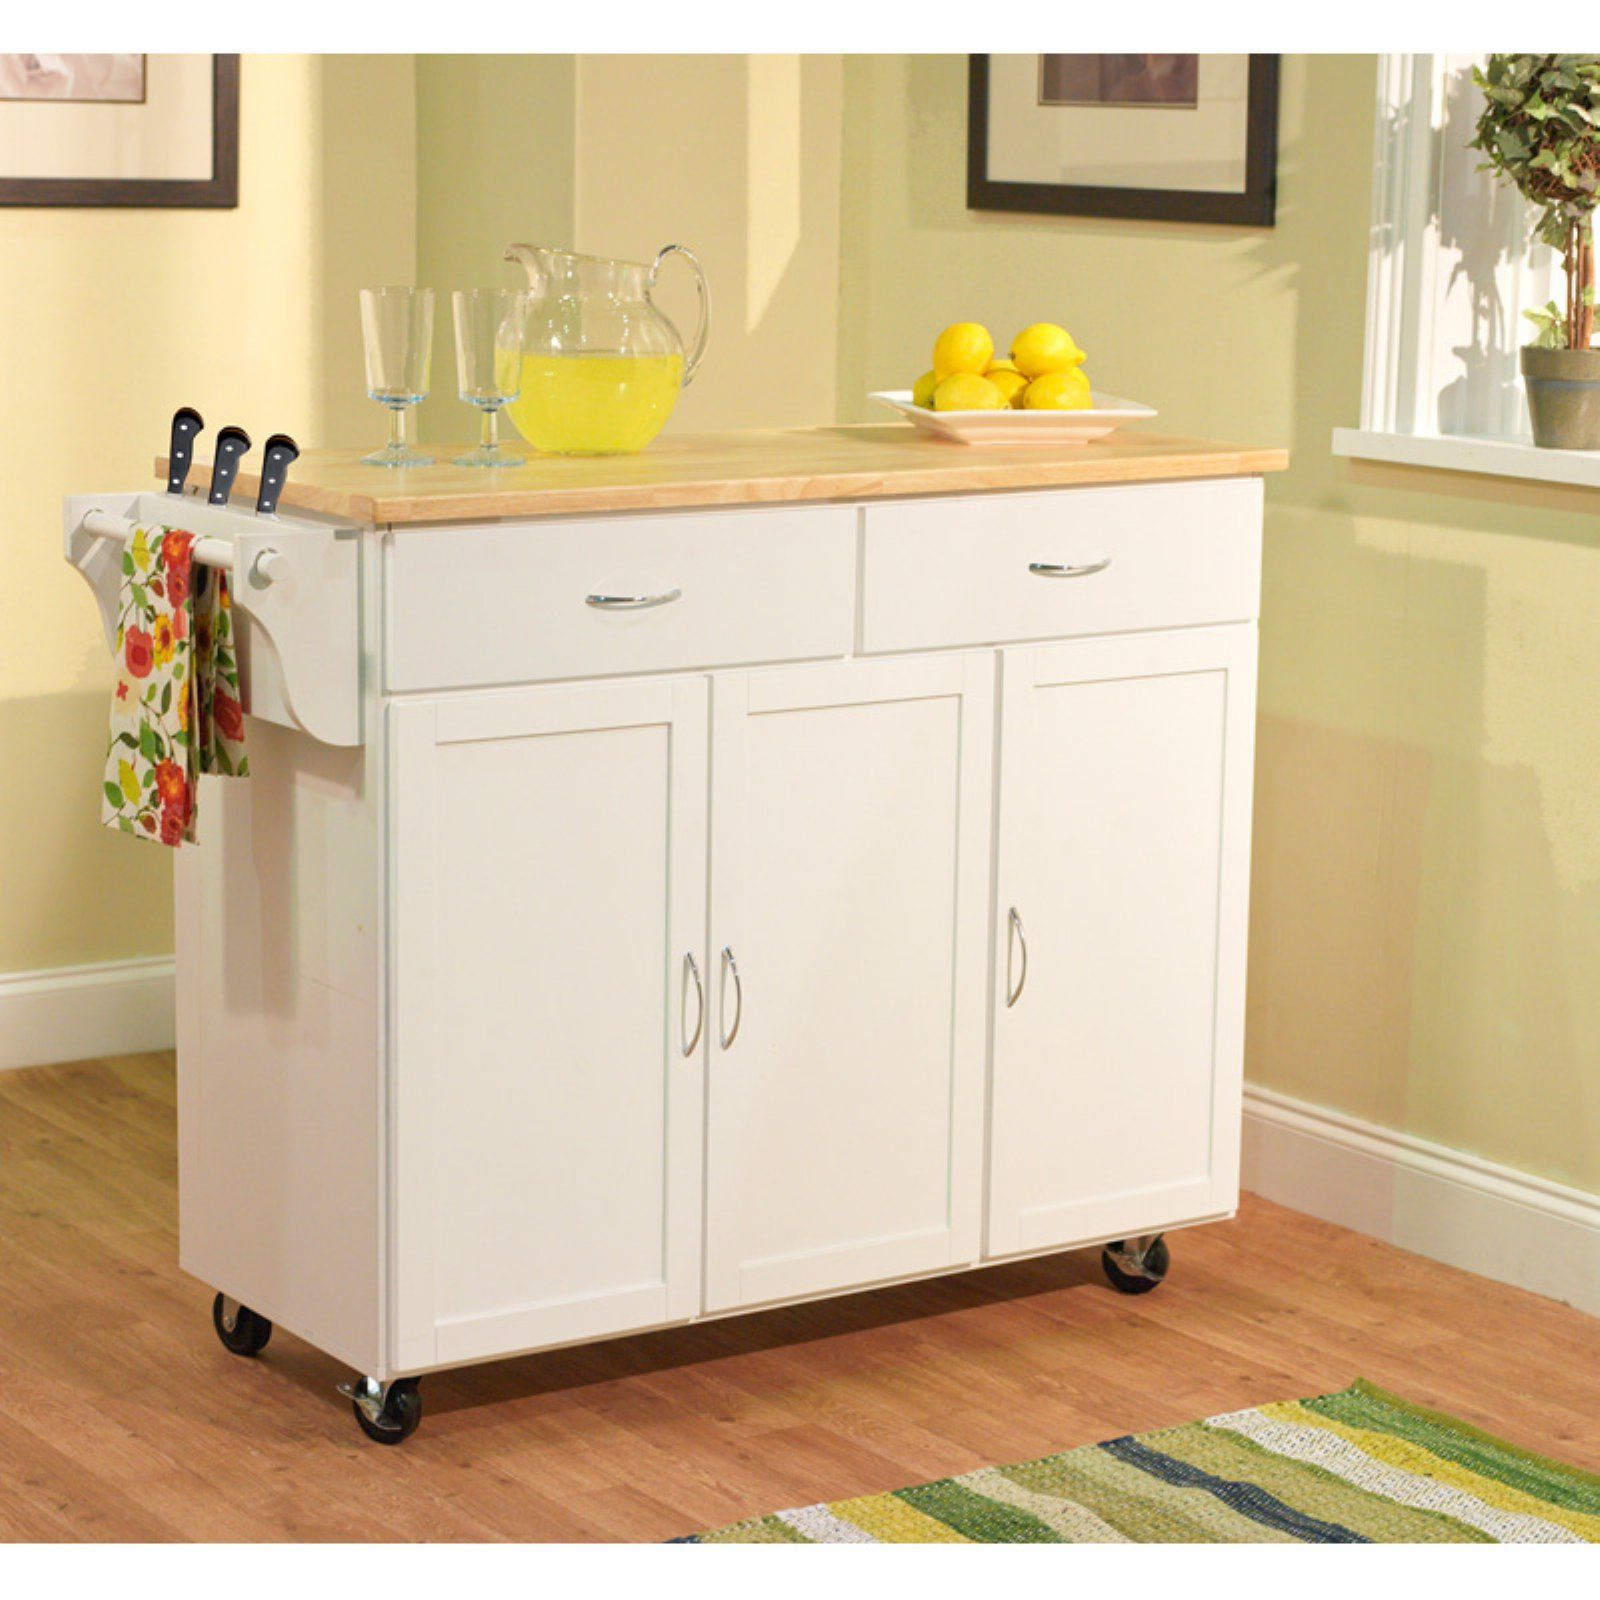 White Target Marketing Systems Monterey Wood Top Kitchen Buffet Cabinet With Three Drawers and Cabinet with Shelf With Towel Bar on Caster Wheels